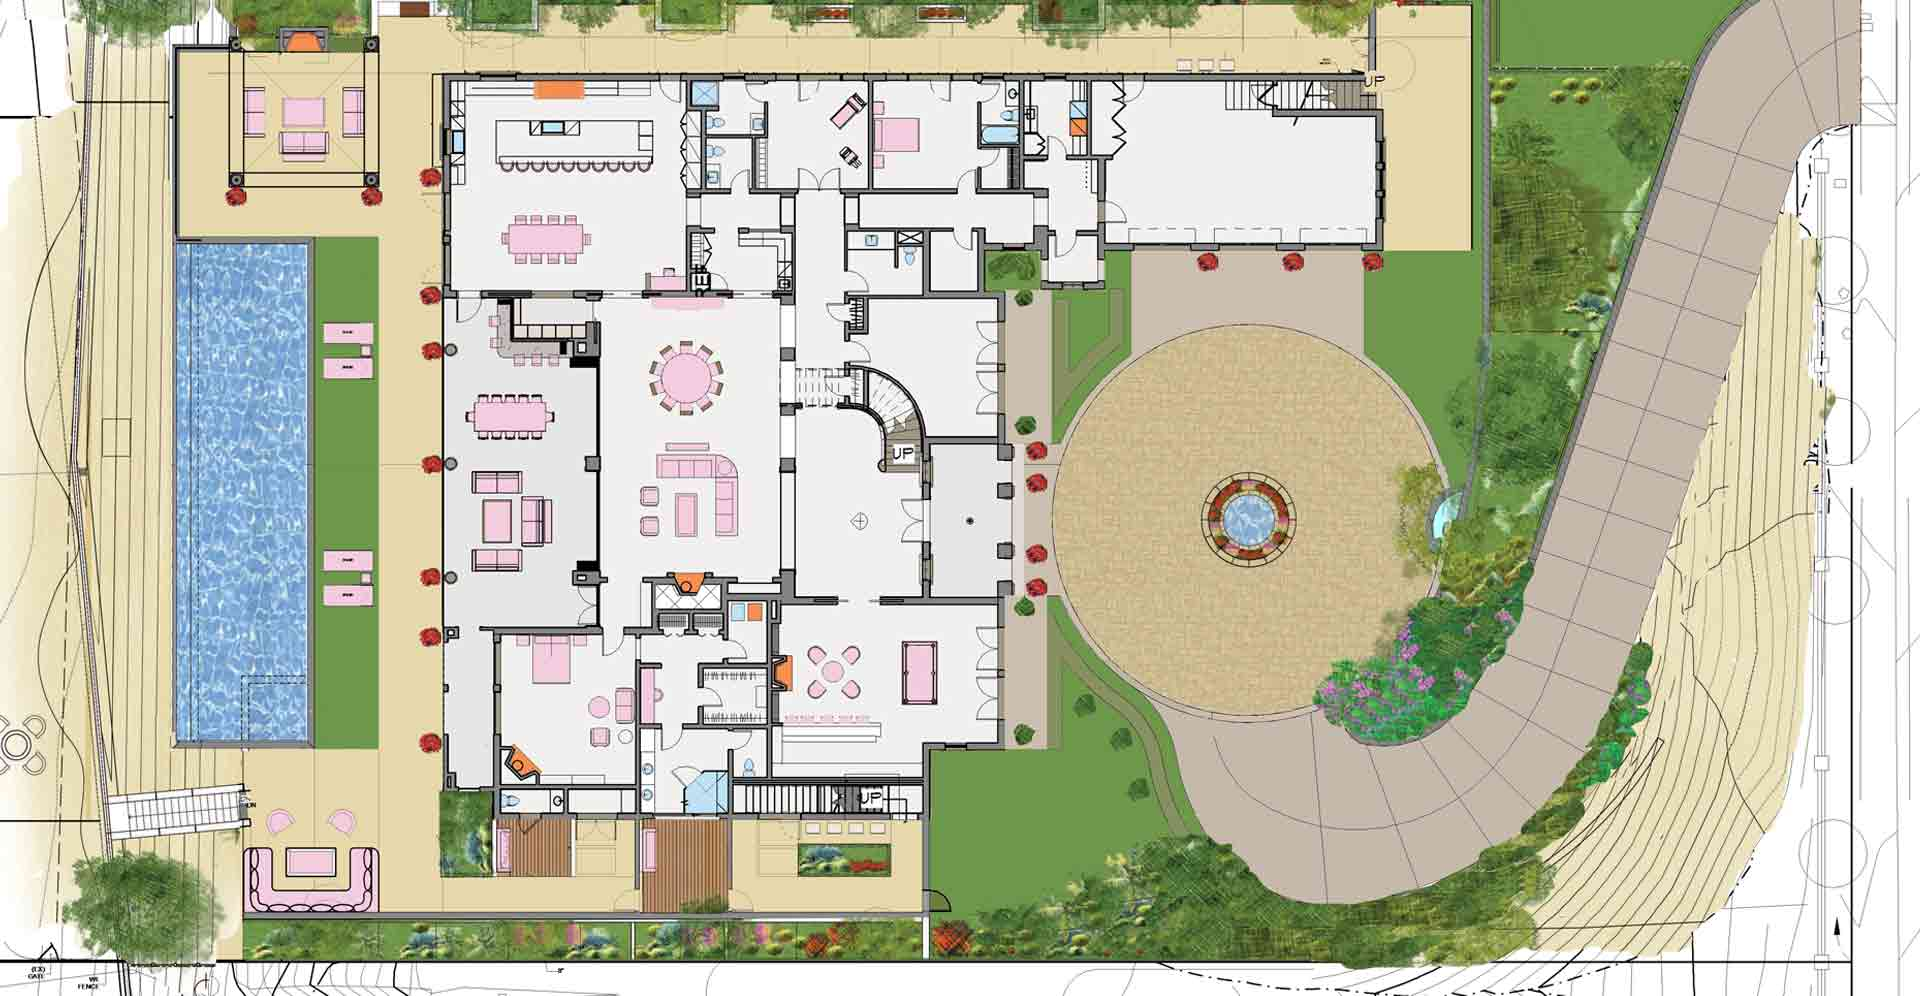 MALIBU-HOUSE-SITE-PLAN.jpg